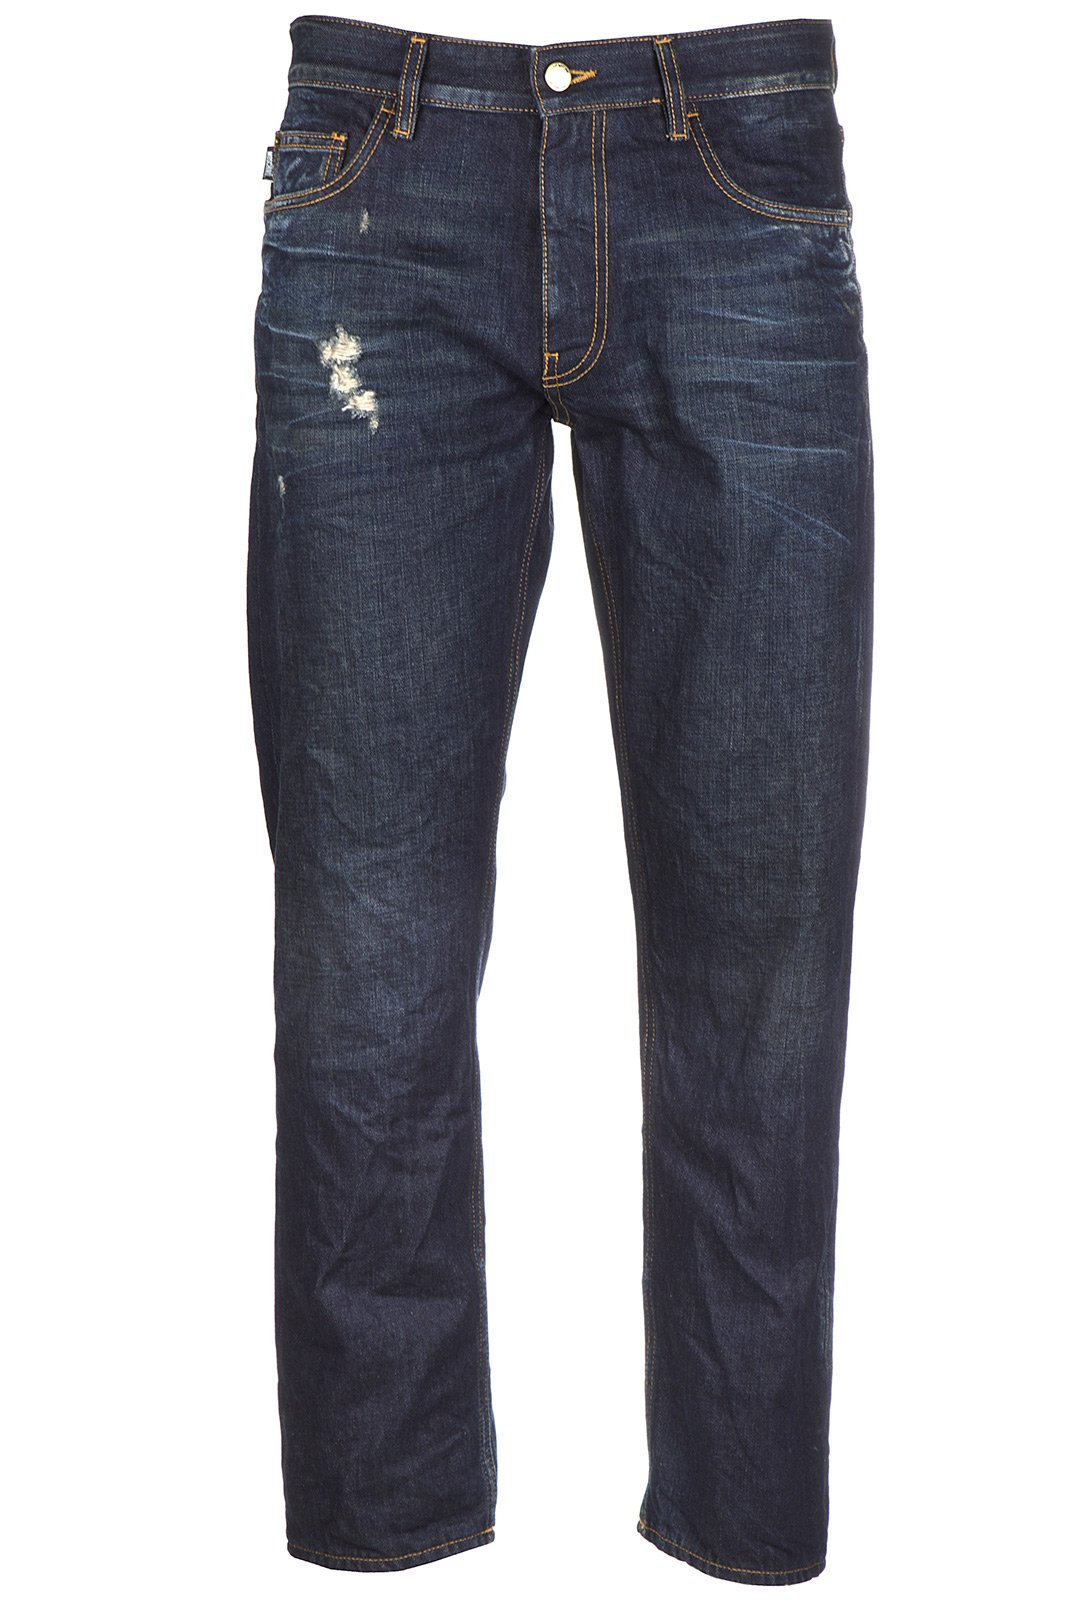 Love Moschino Men's Jeans Denim Blu US Size 32 (US 32) M Q 426 04 T 8632 33